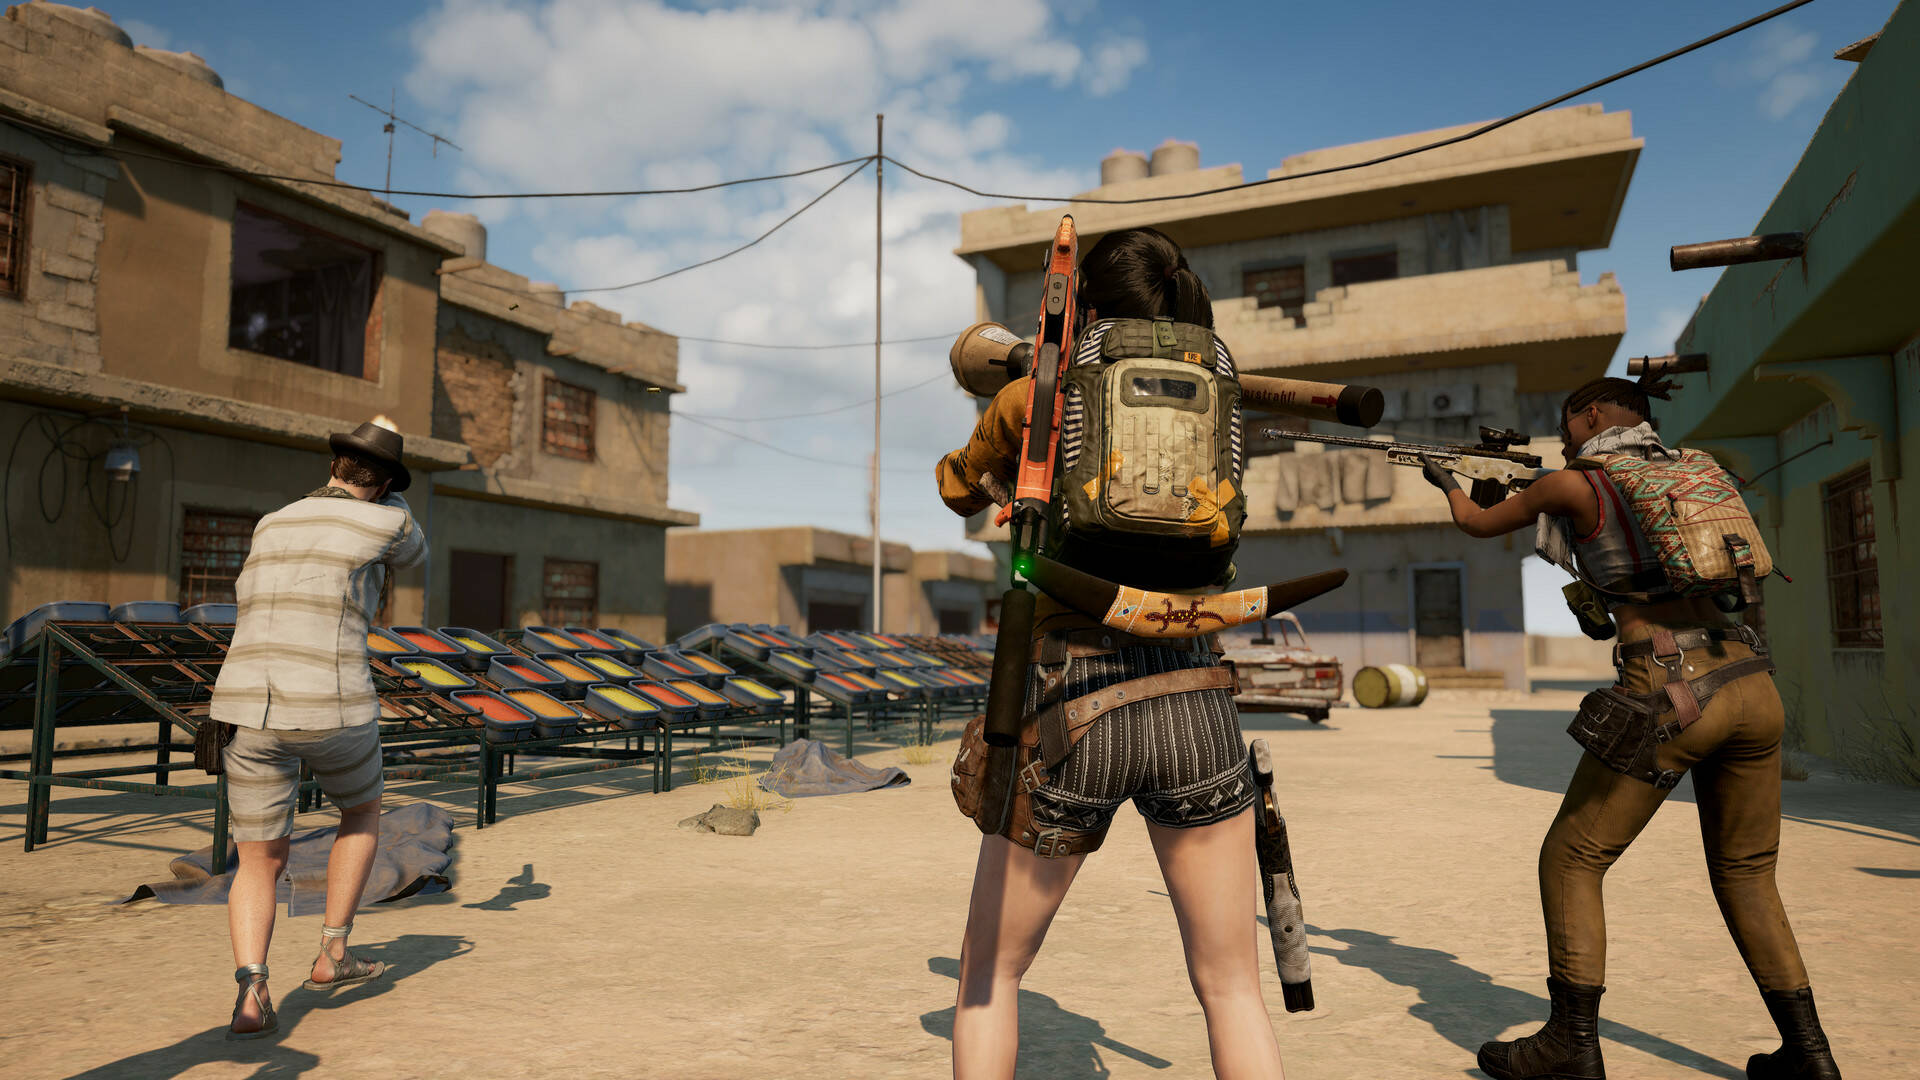 A big battle royale becomes free (but for a little while)